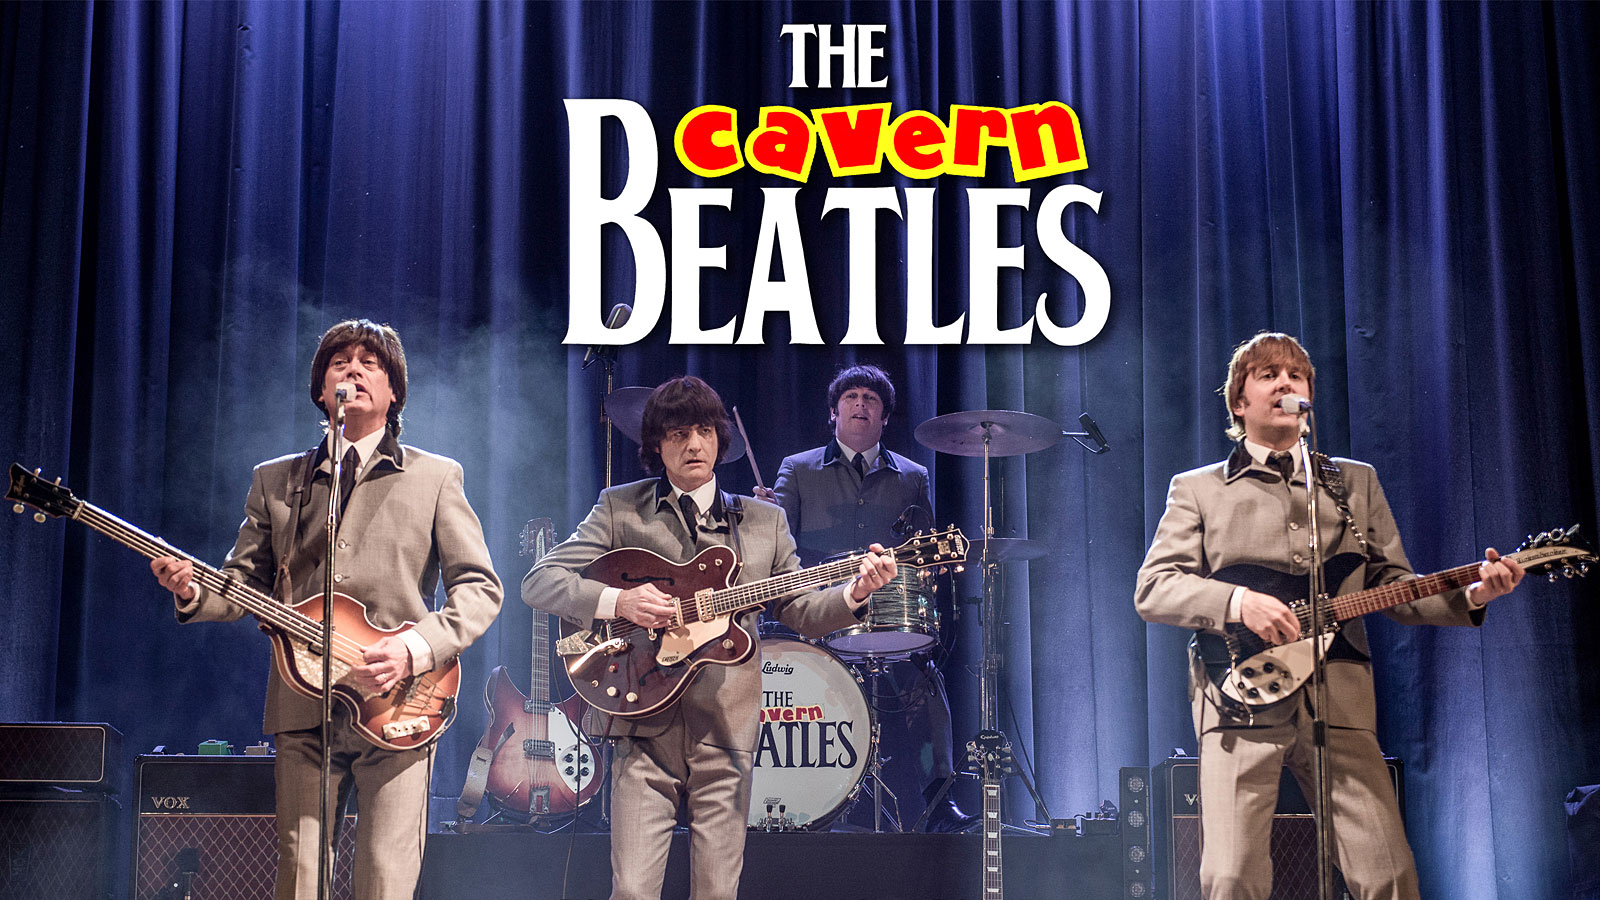 The Cavern Beatles - Get Back Tour